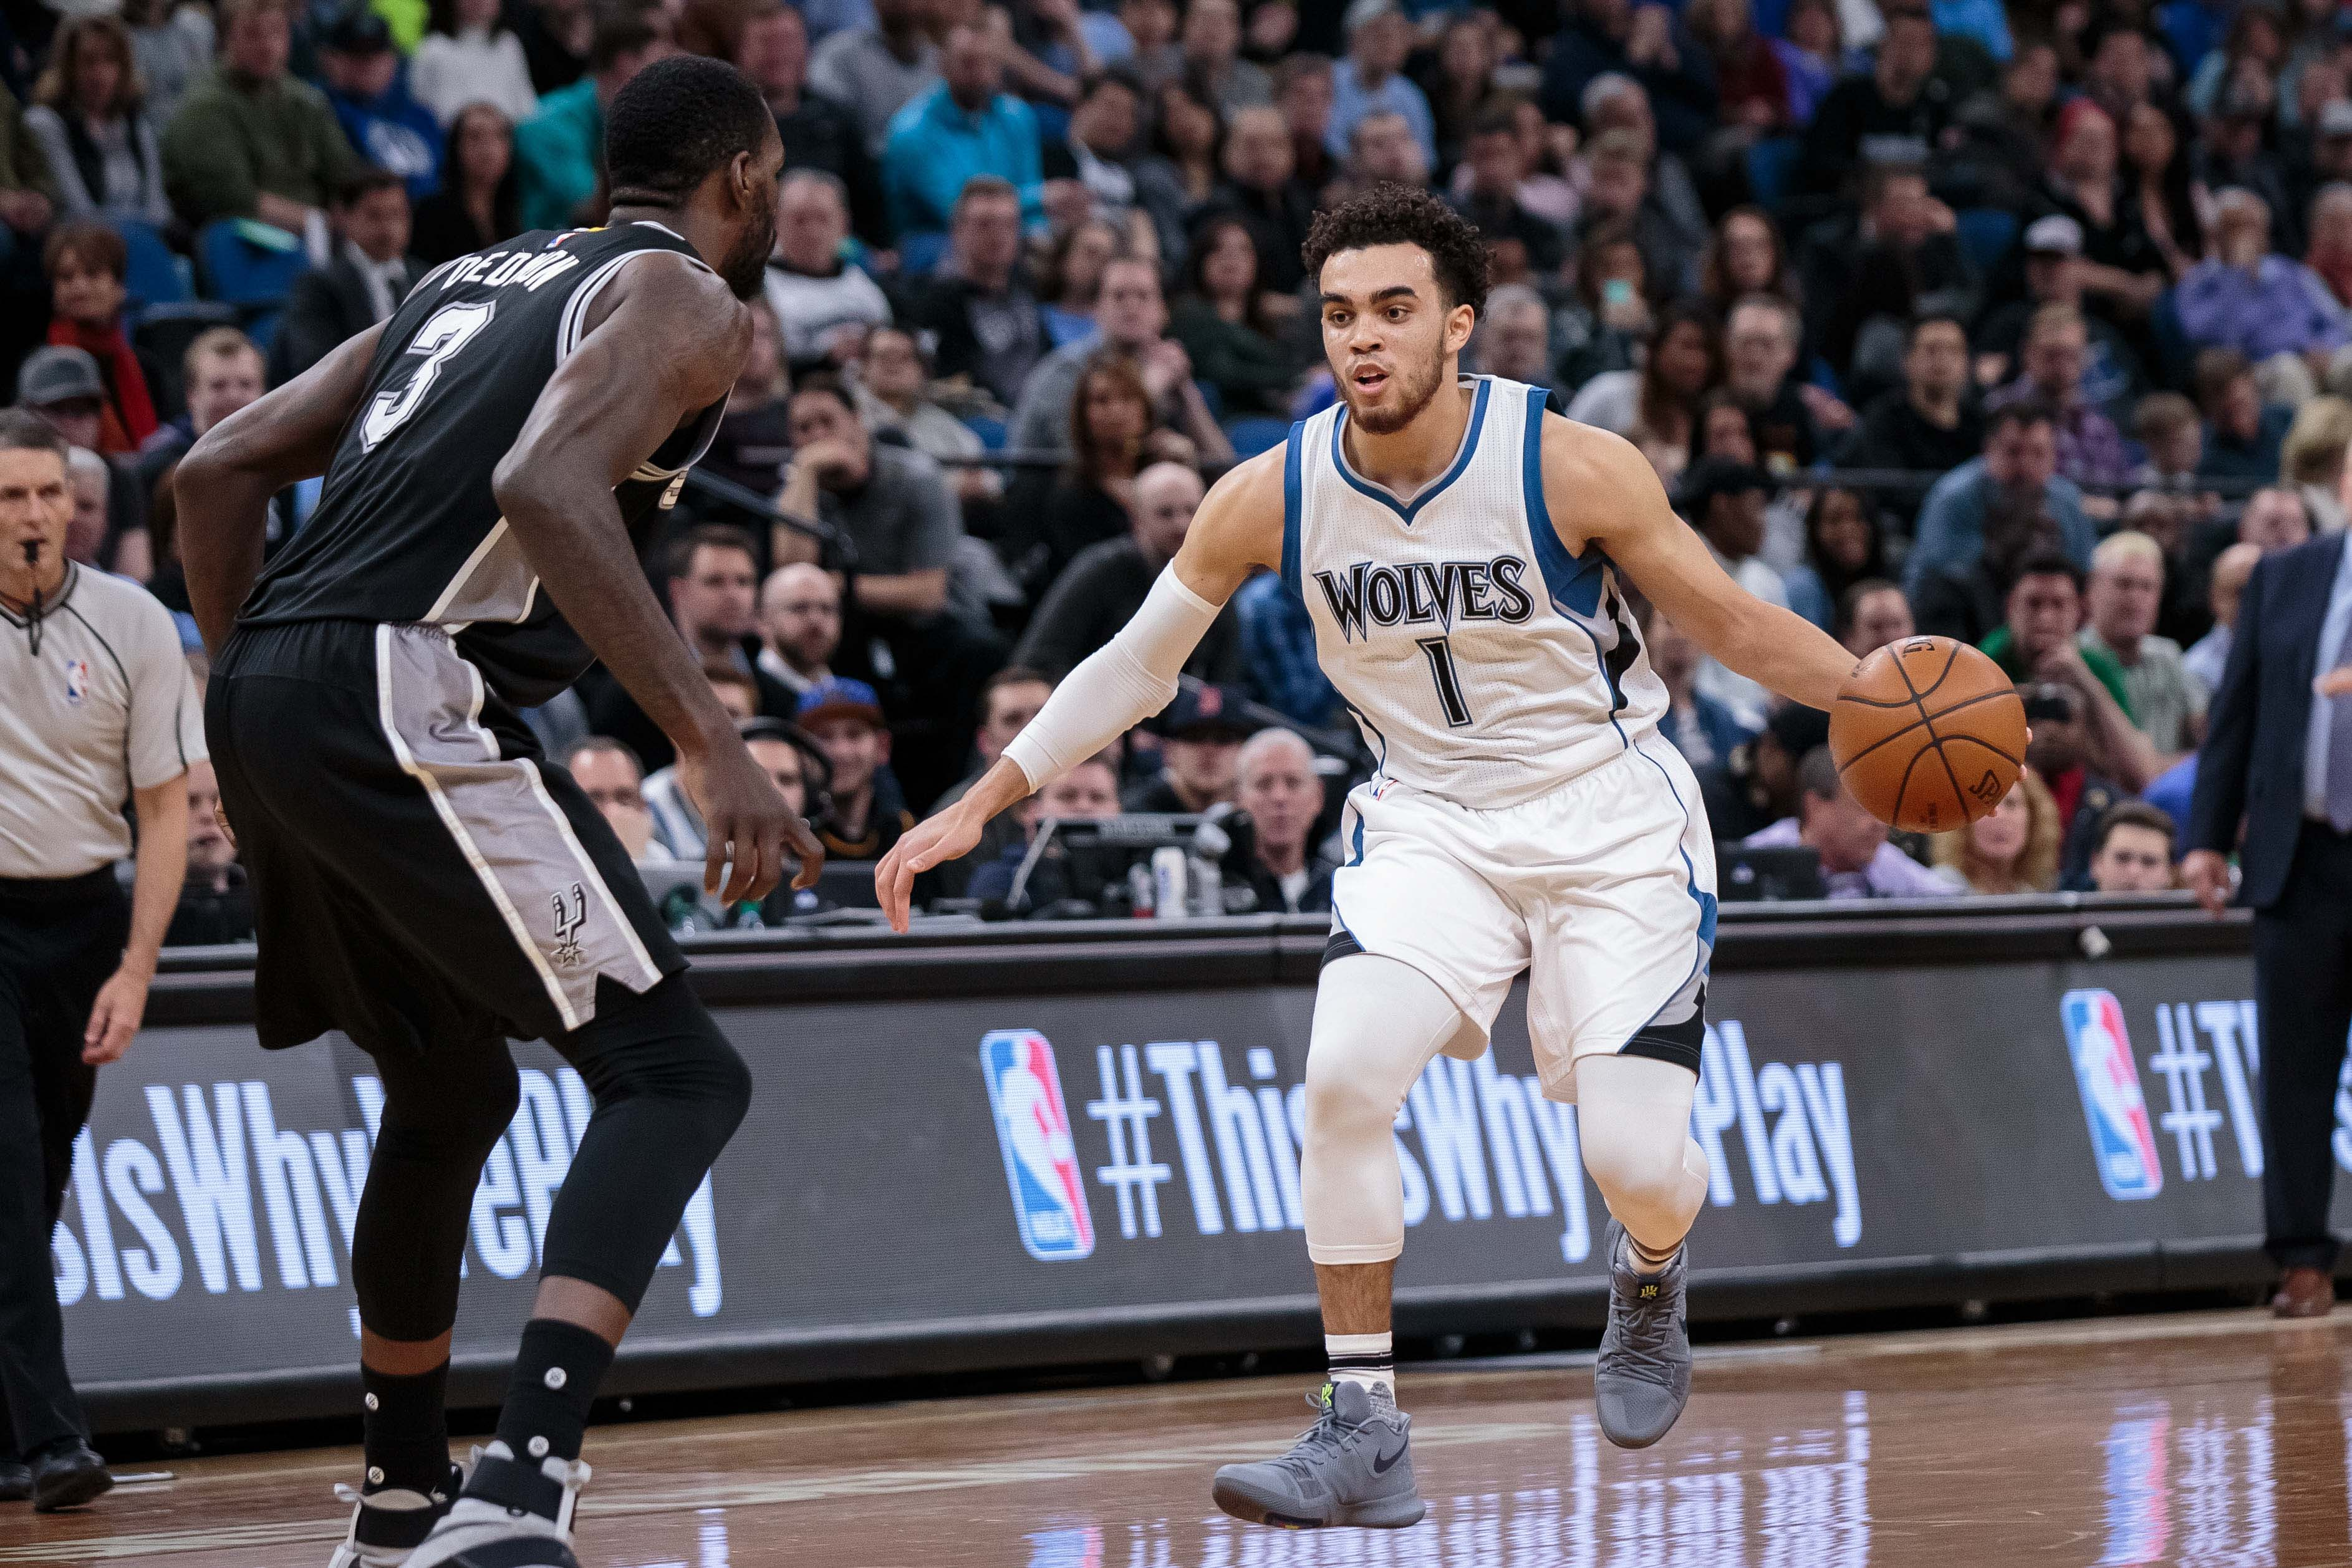 9973570-nba-san-antonio-spurs-at-minnesota-timberwolves